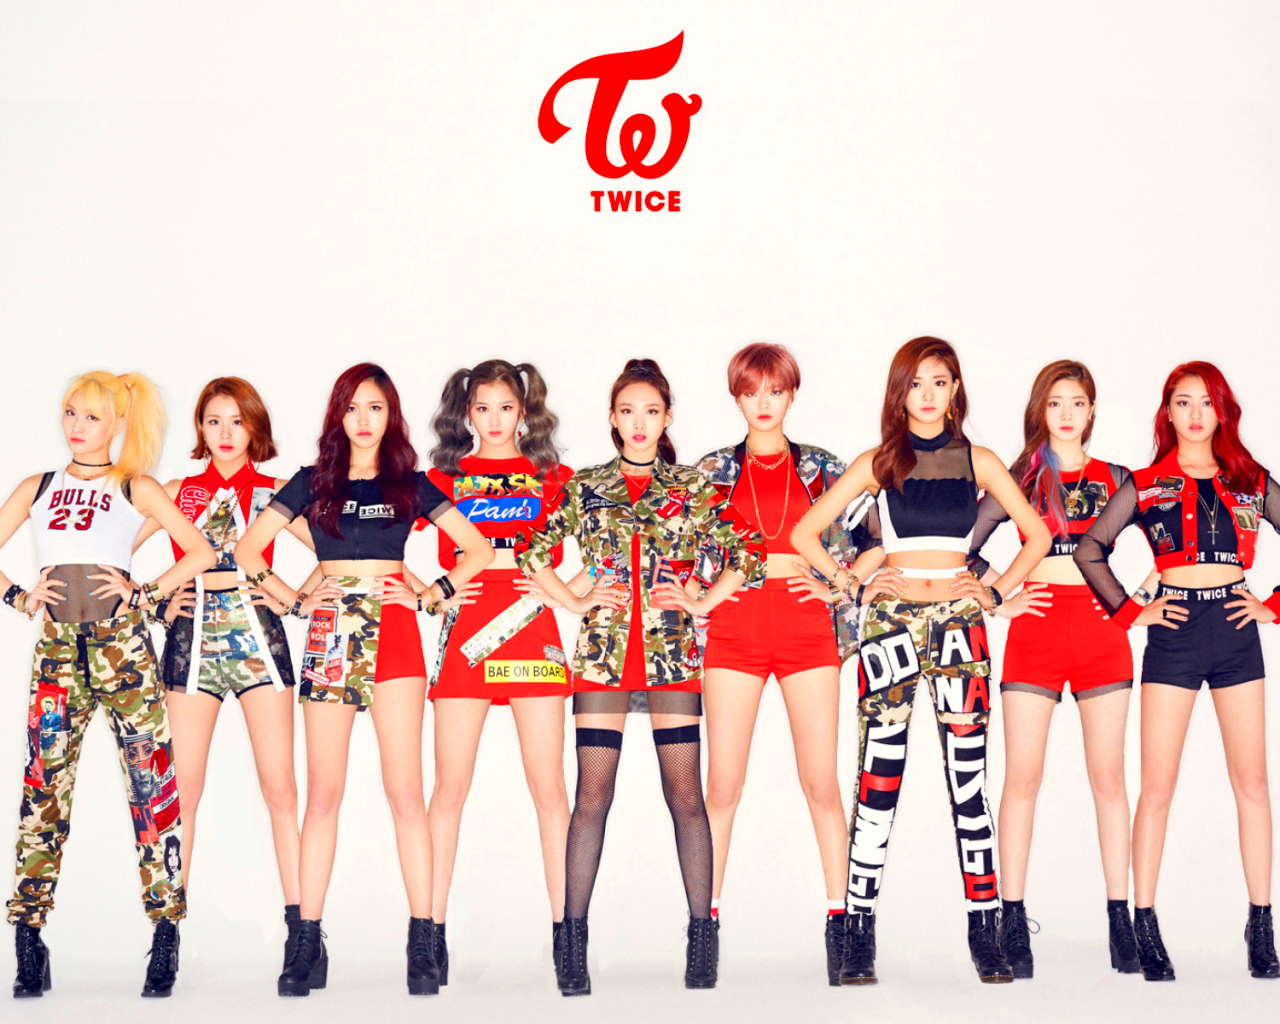 Twice Wallpaper Kpop Wallpaper 41566757 Fanpop